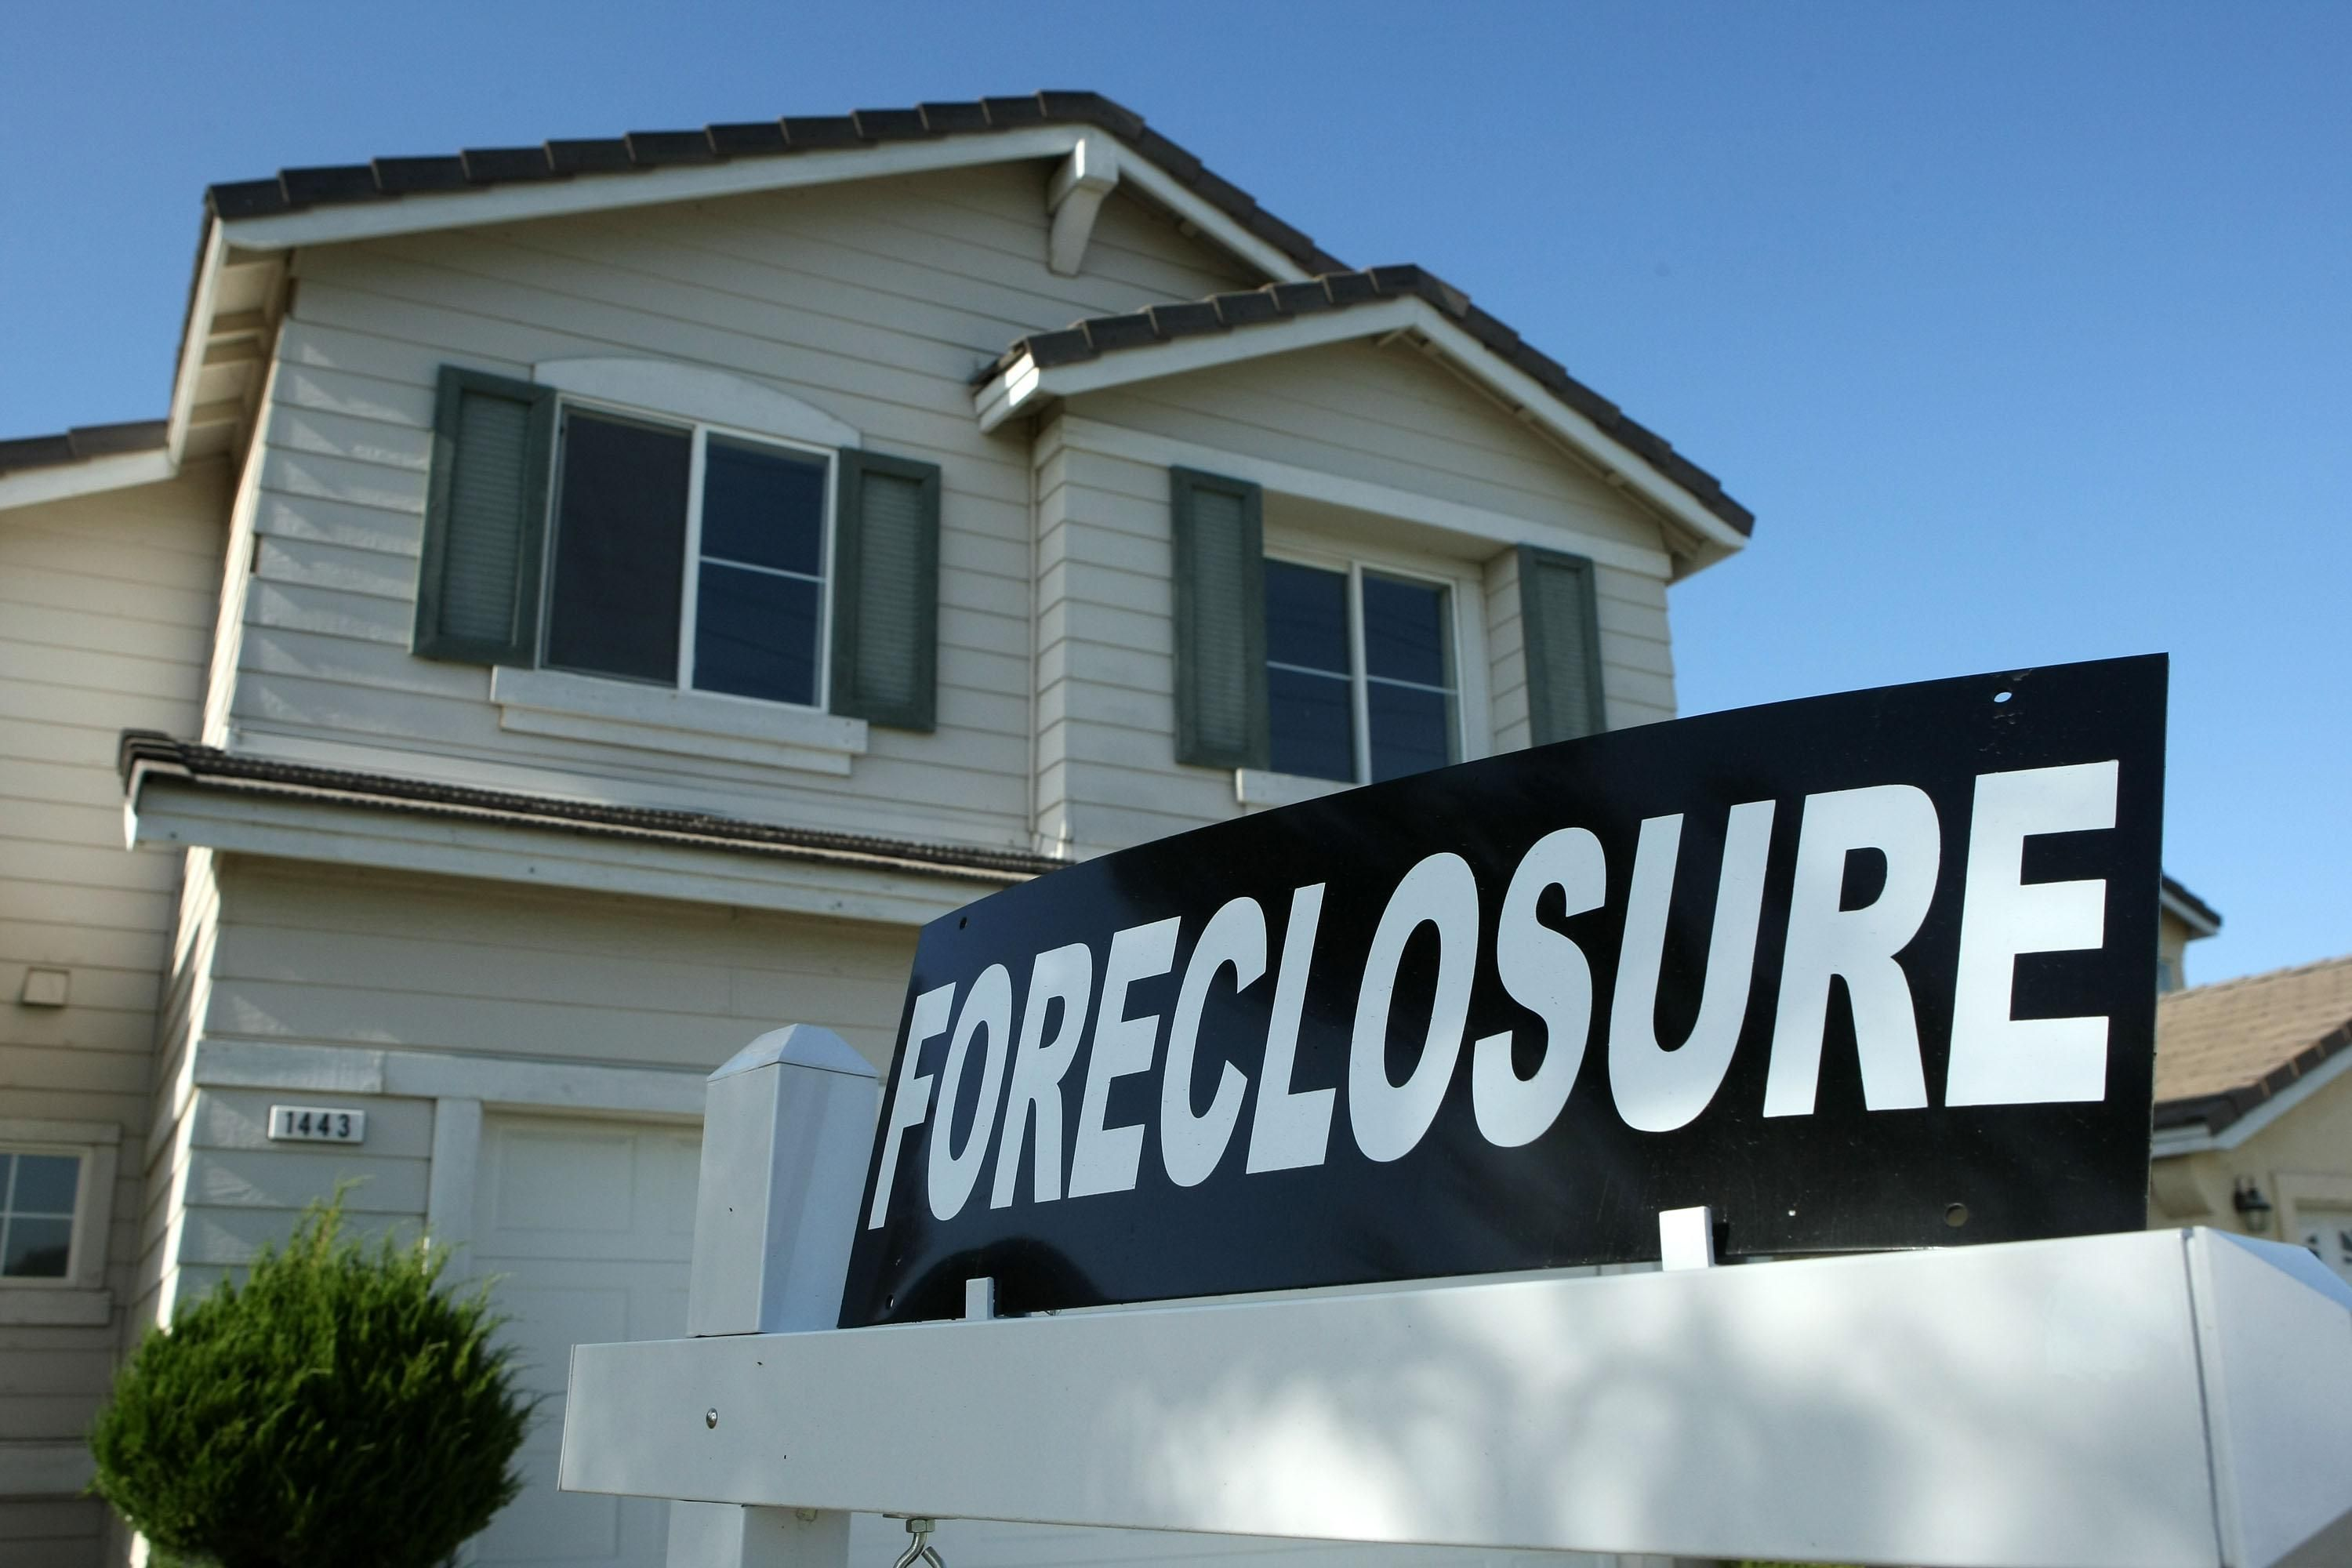 Foreclosure assistance NJ